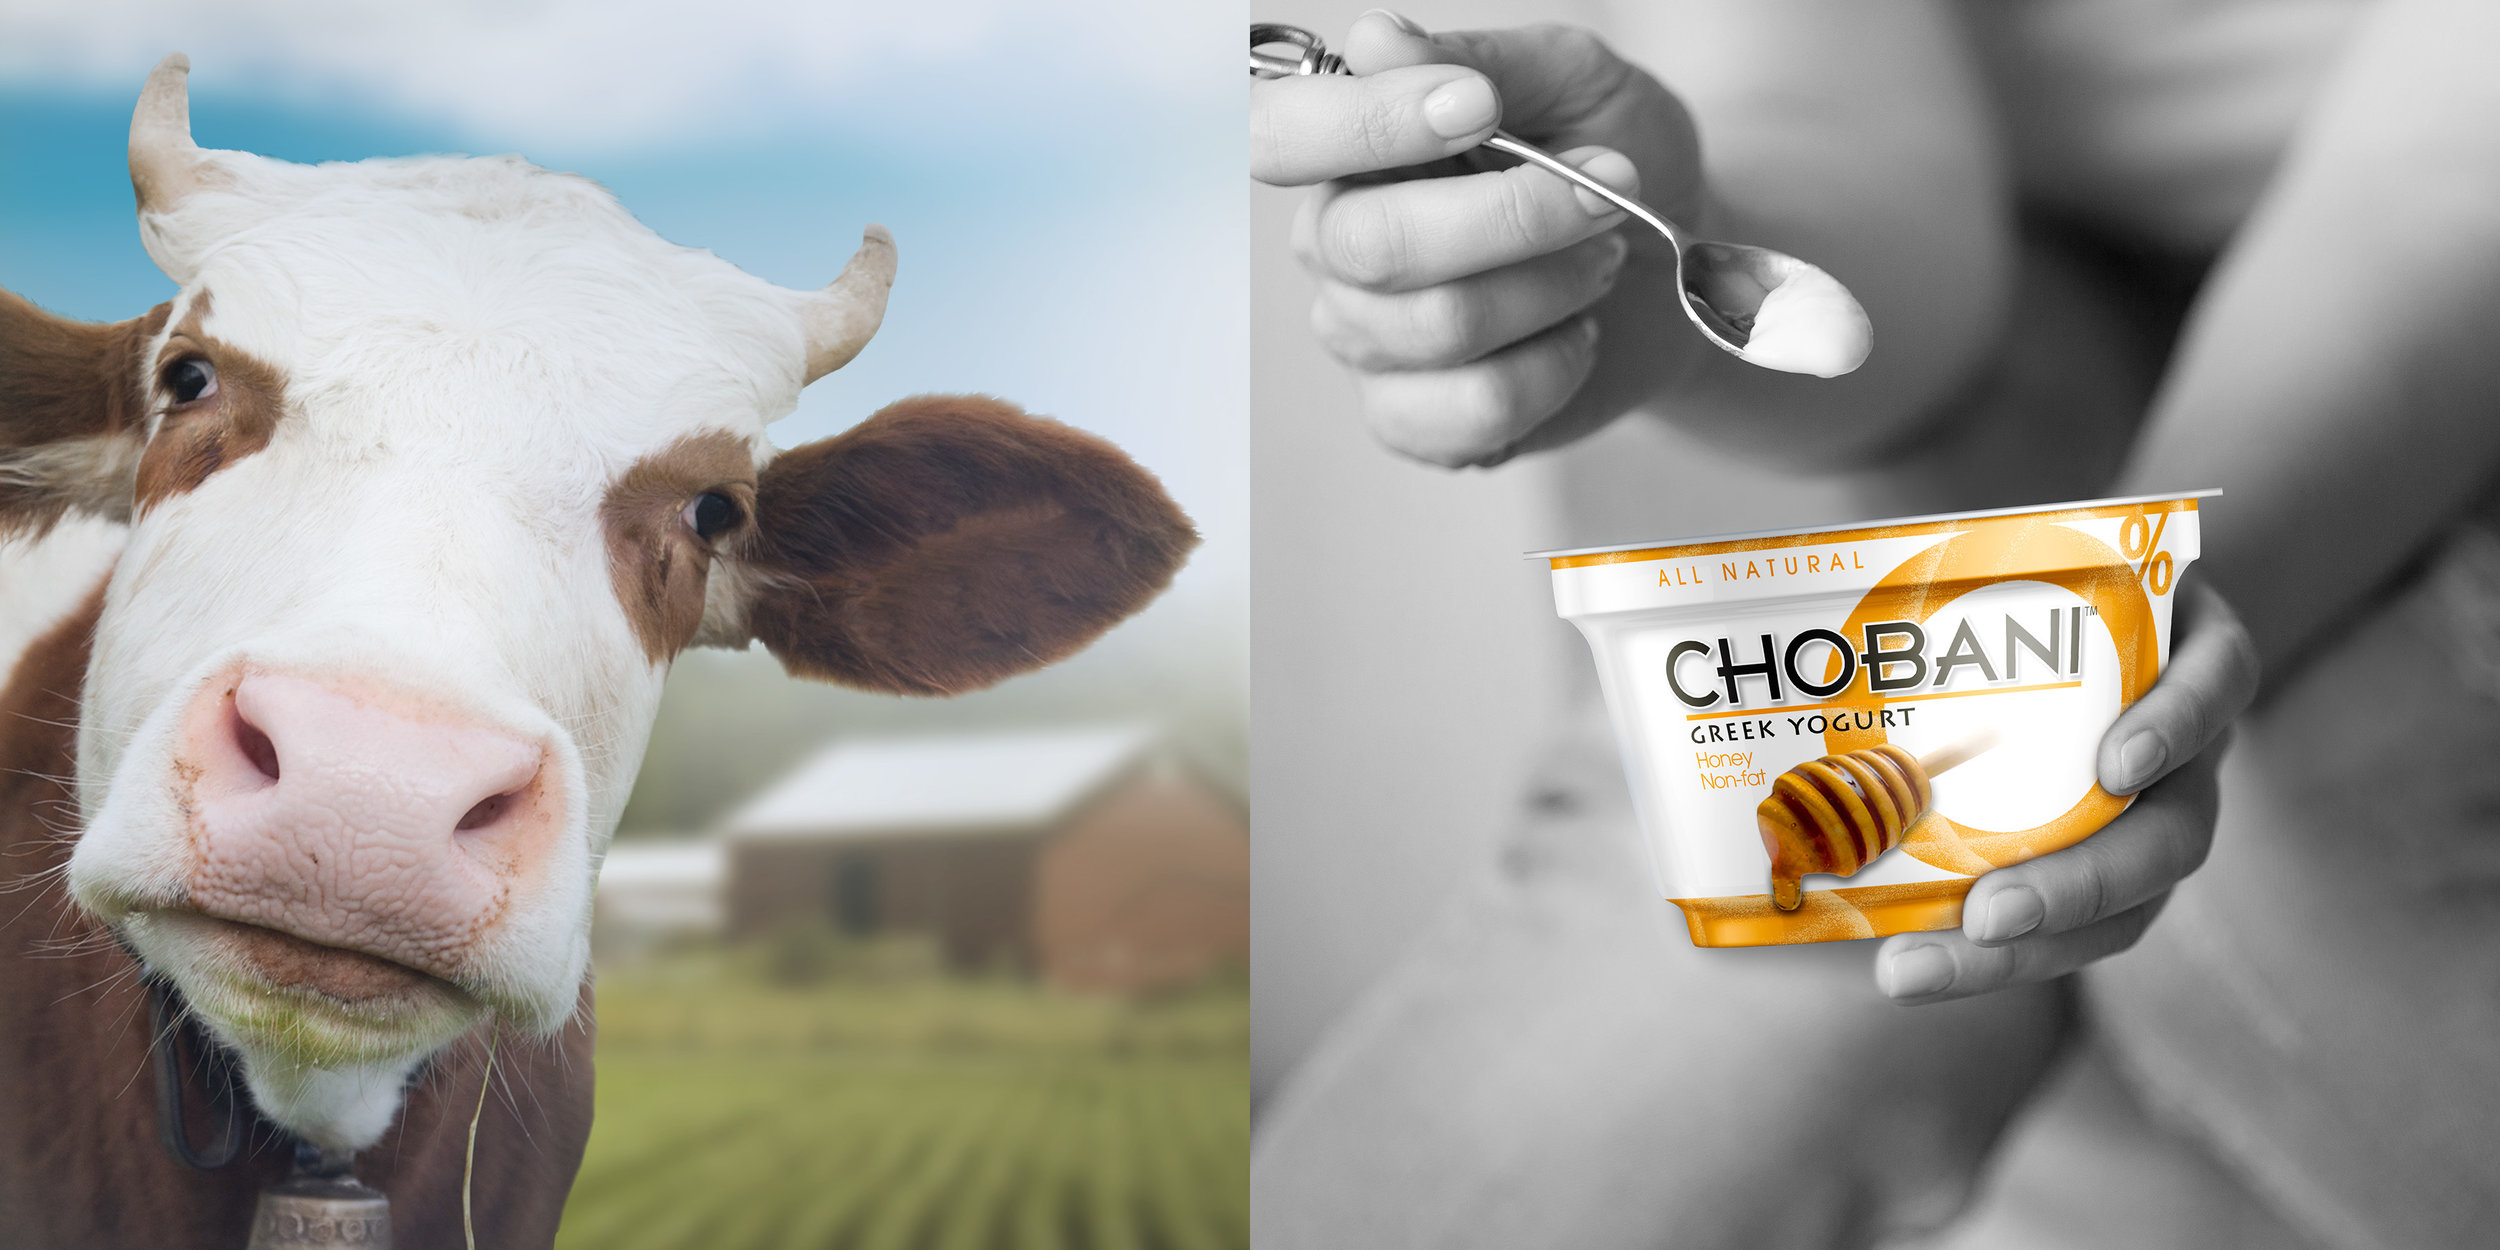 Image_12x6_Chobani_2up.jpg